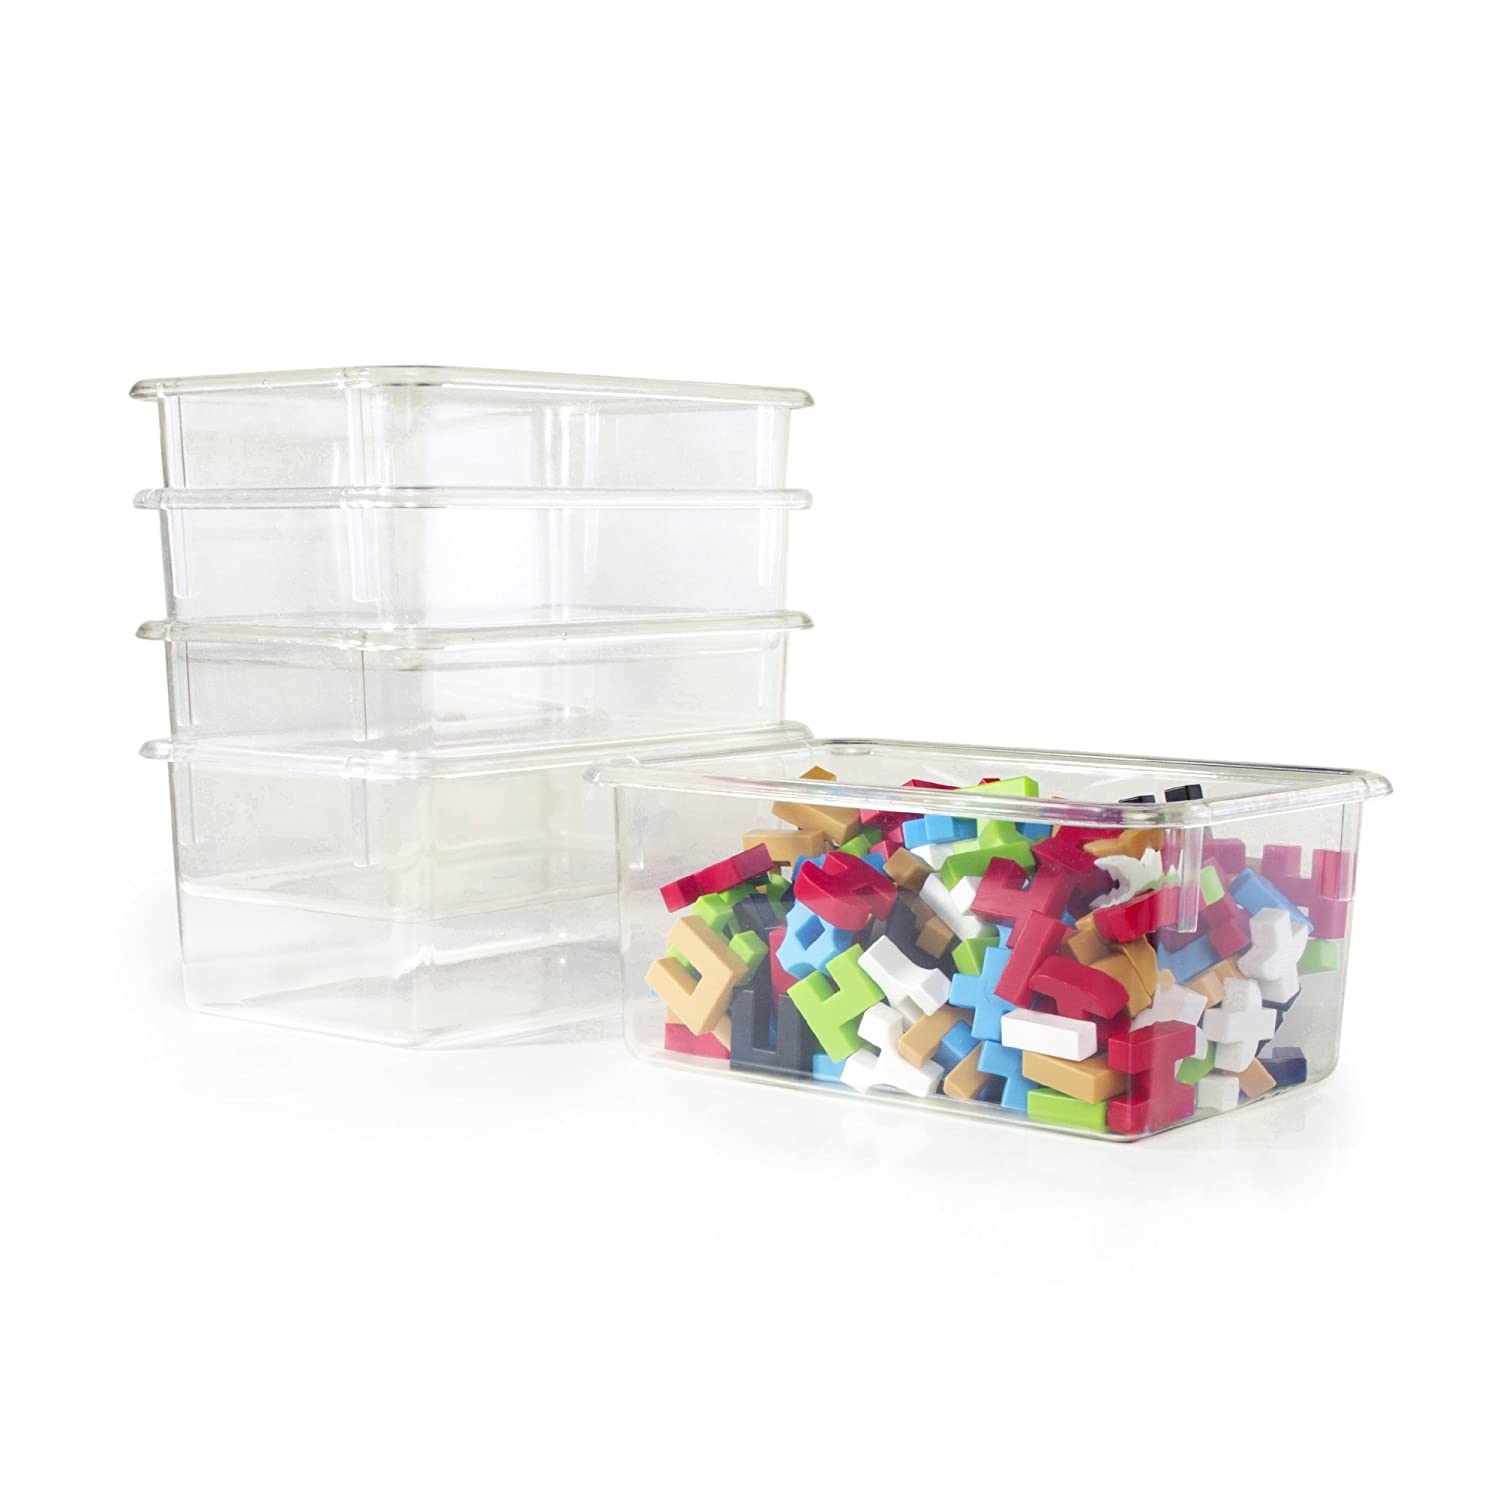 Guidecraft Clear Classroom Storage Bins for Toys, Supplies – Set of 5 Supplies – Set of 5